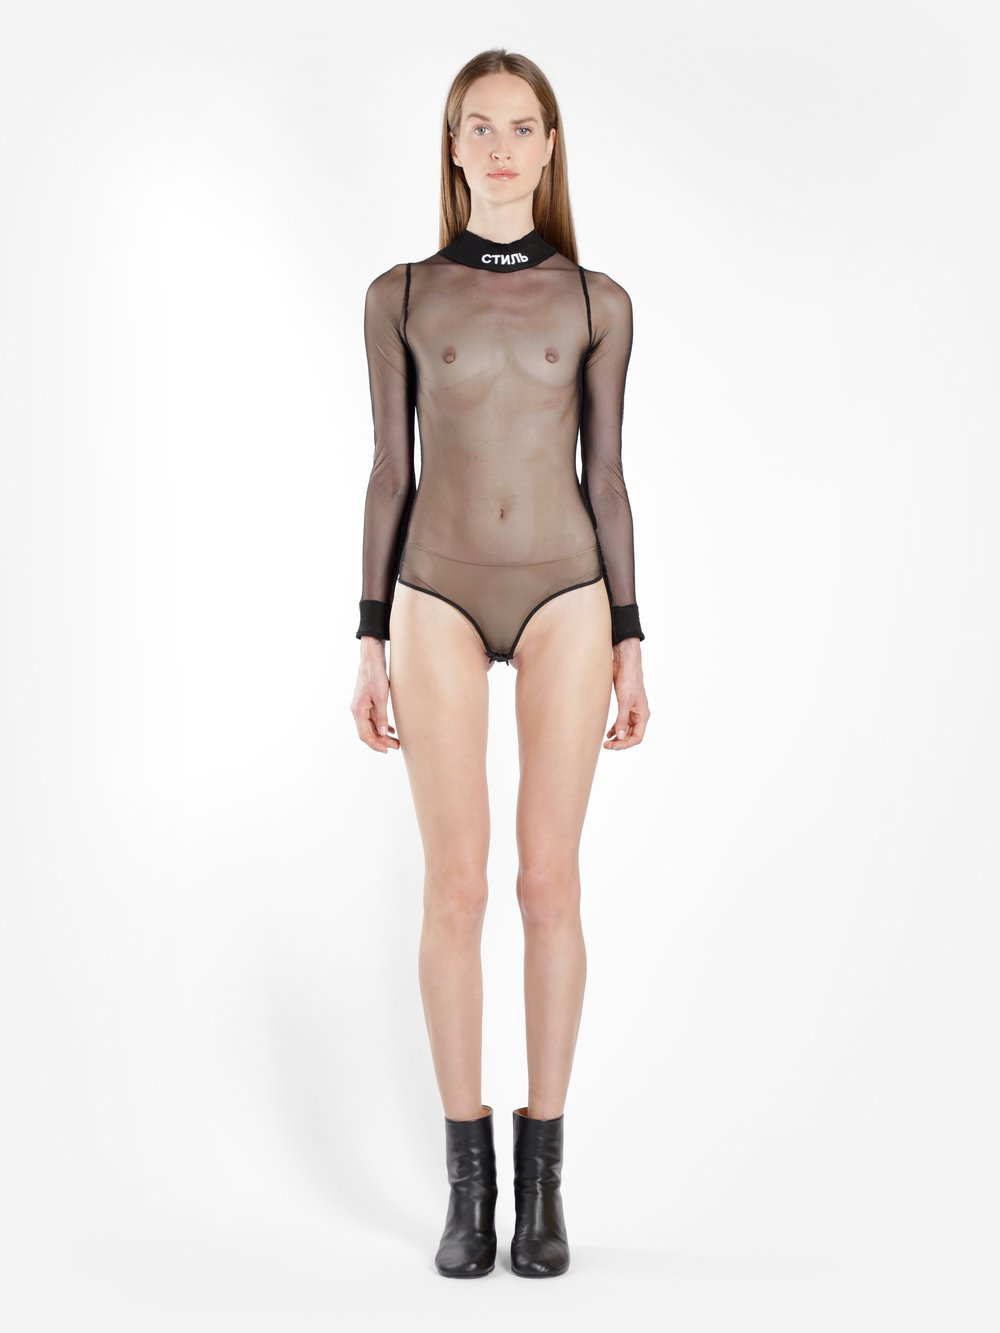 HERON PRESTON WOMEN'S BLACK CTNMB SHEER BODY